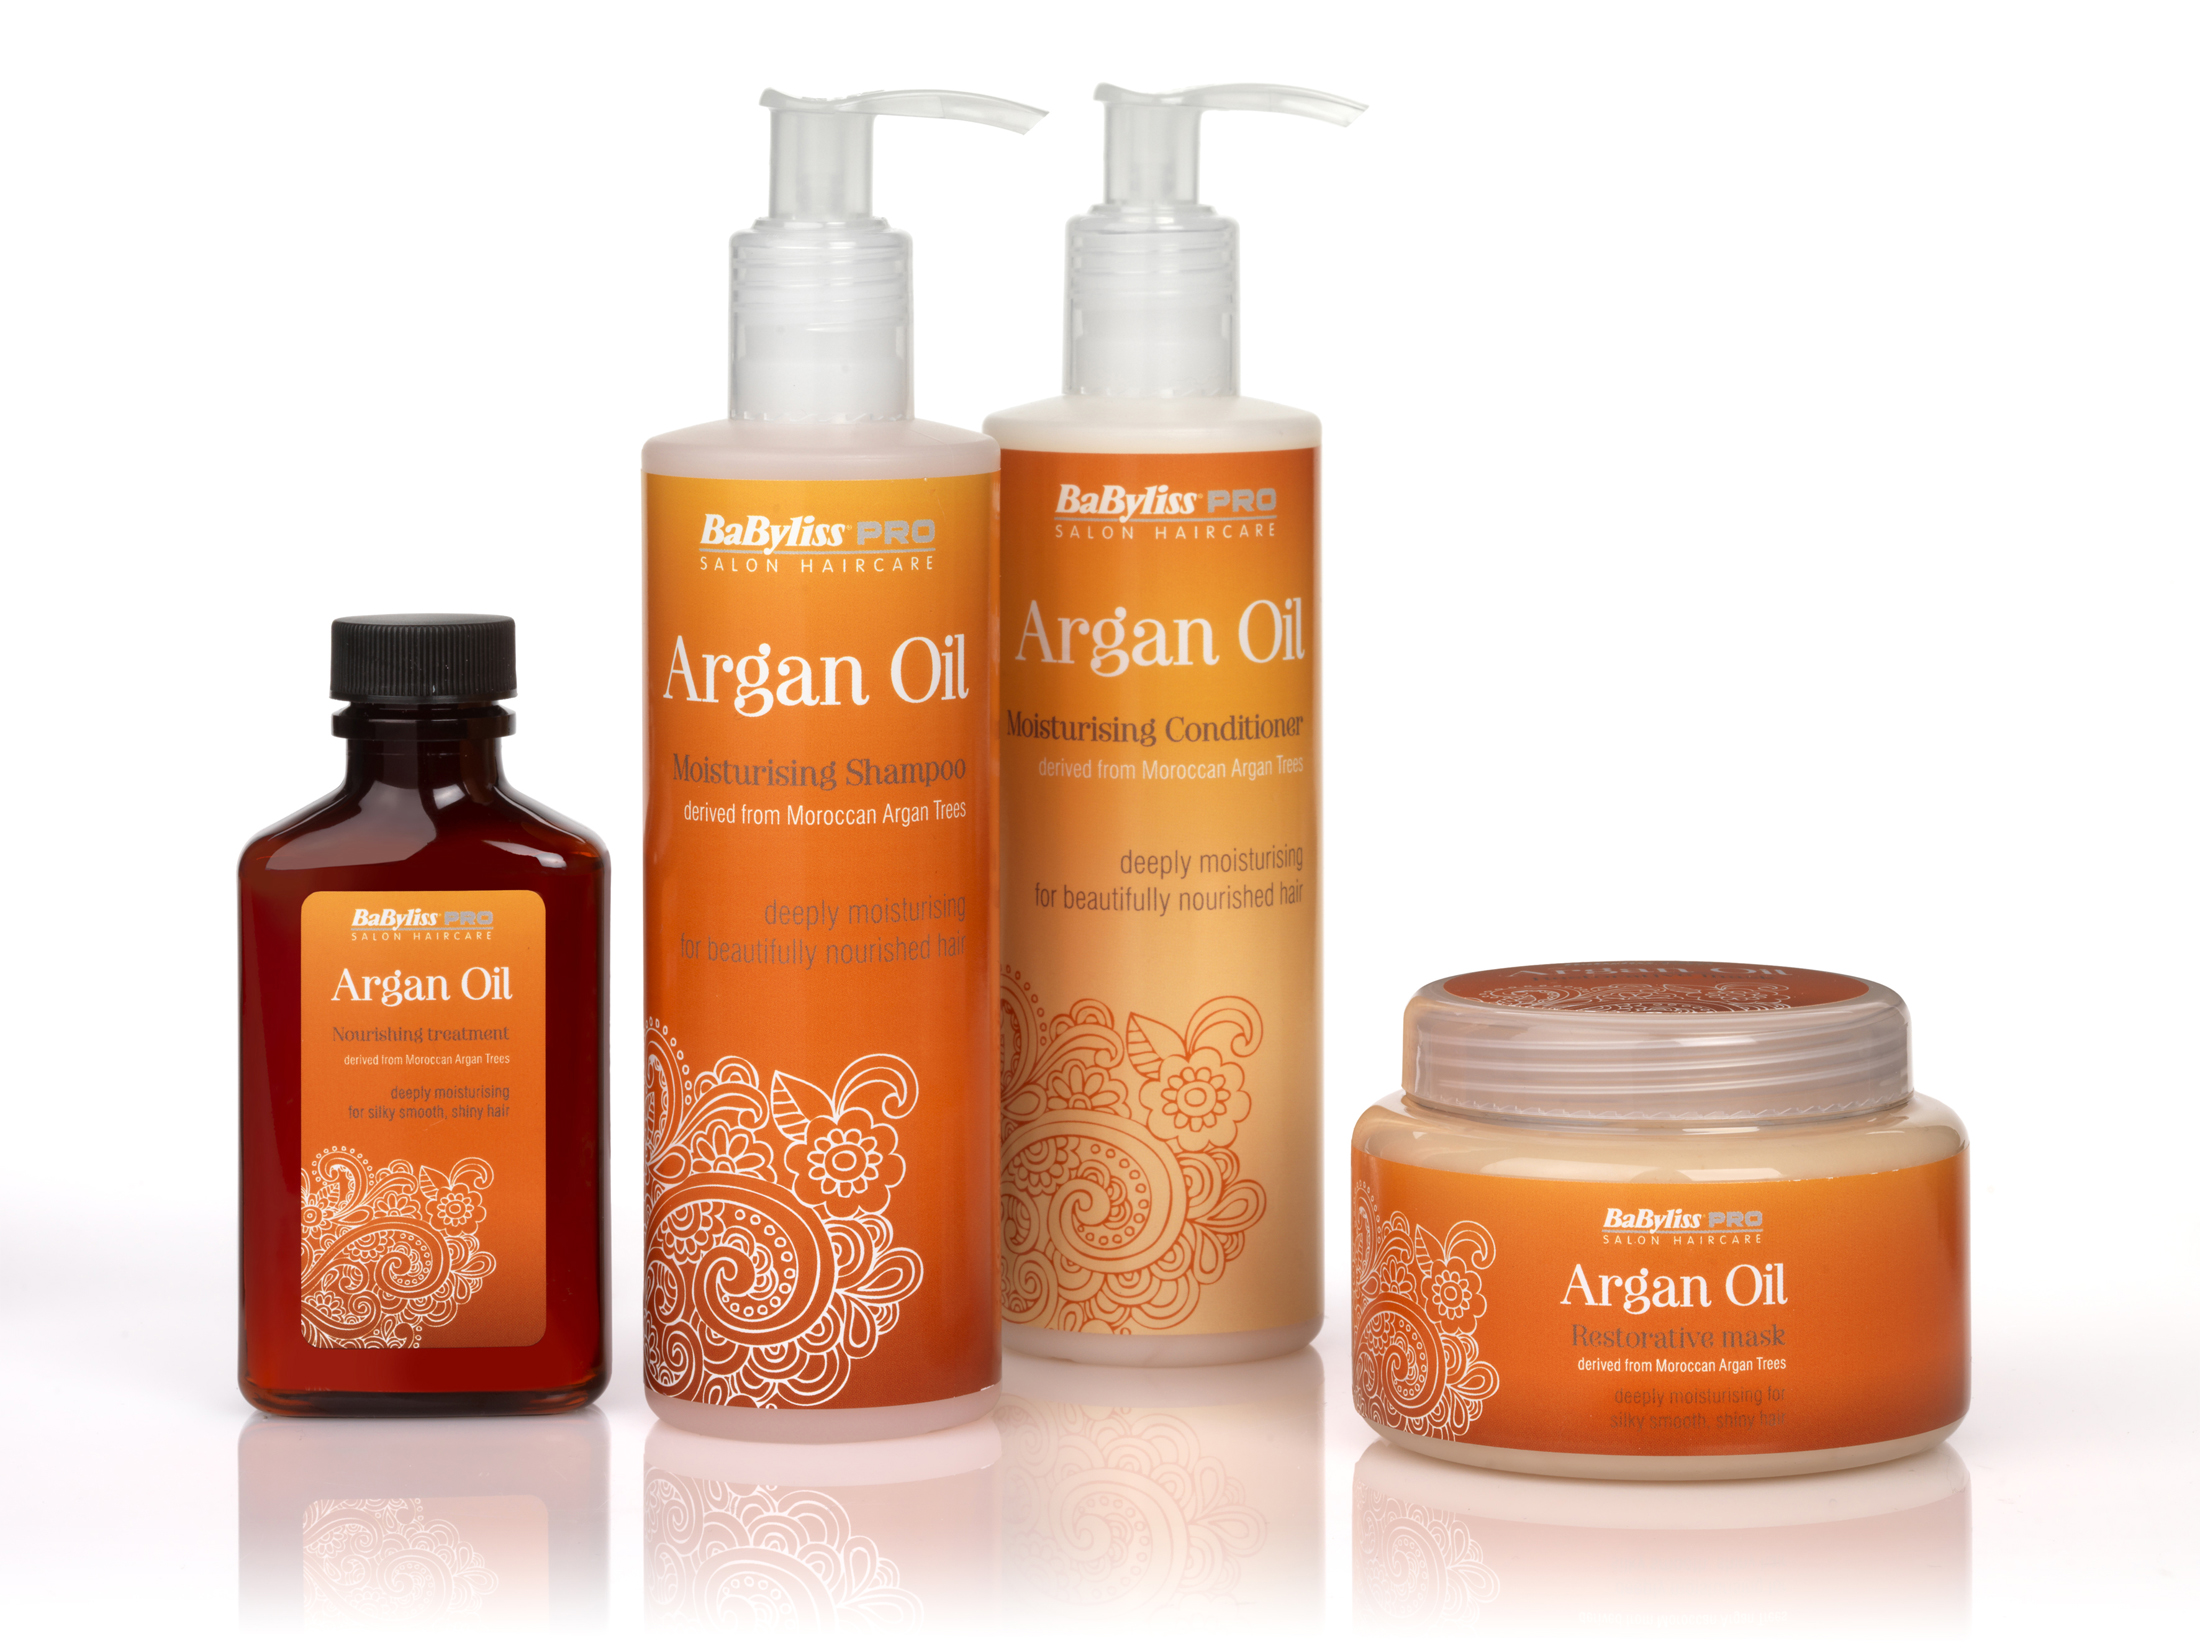 Babyliss Pro Argan Oil Hair Care Range Review Short Skirts And